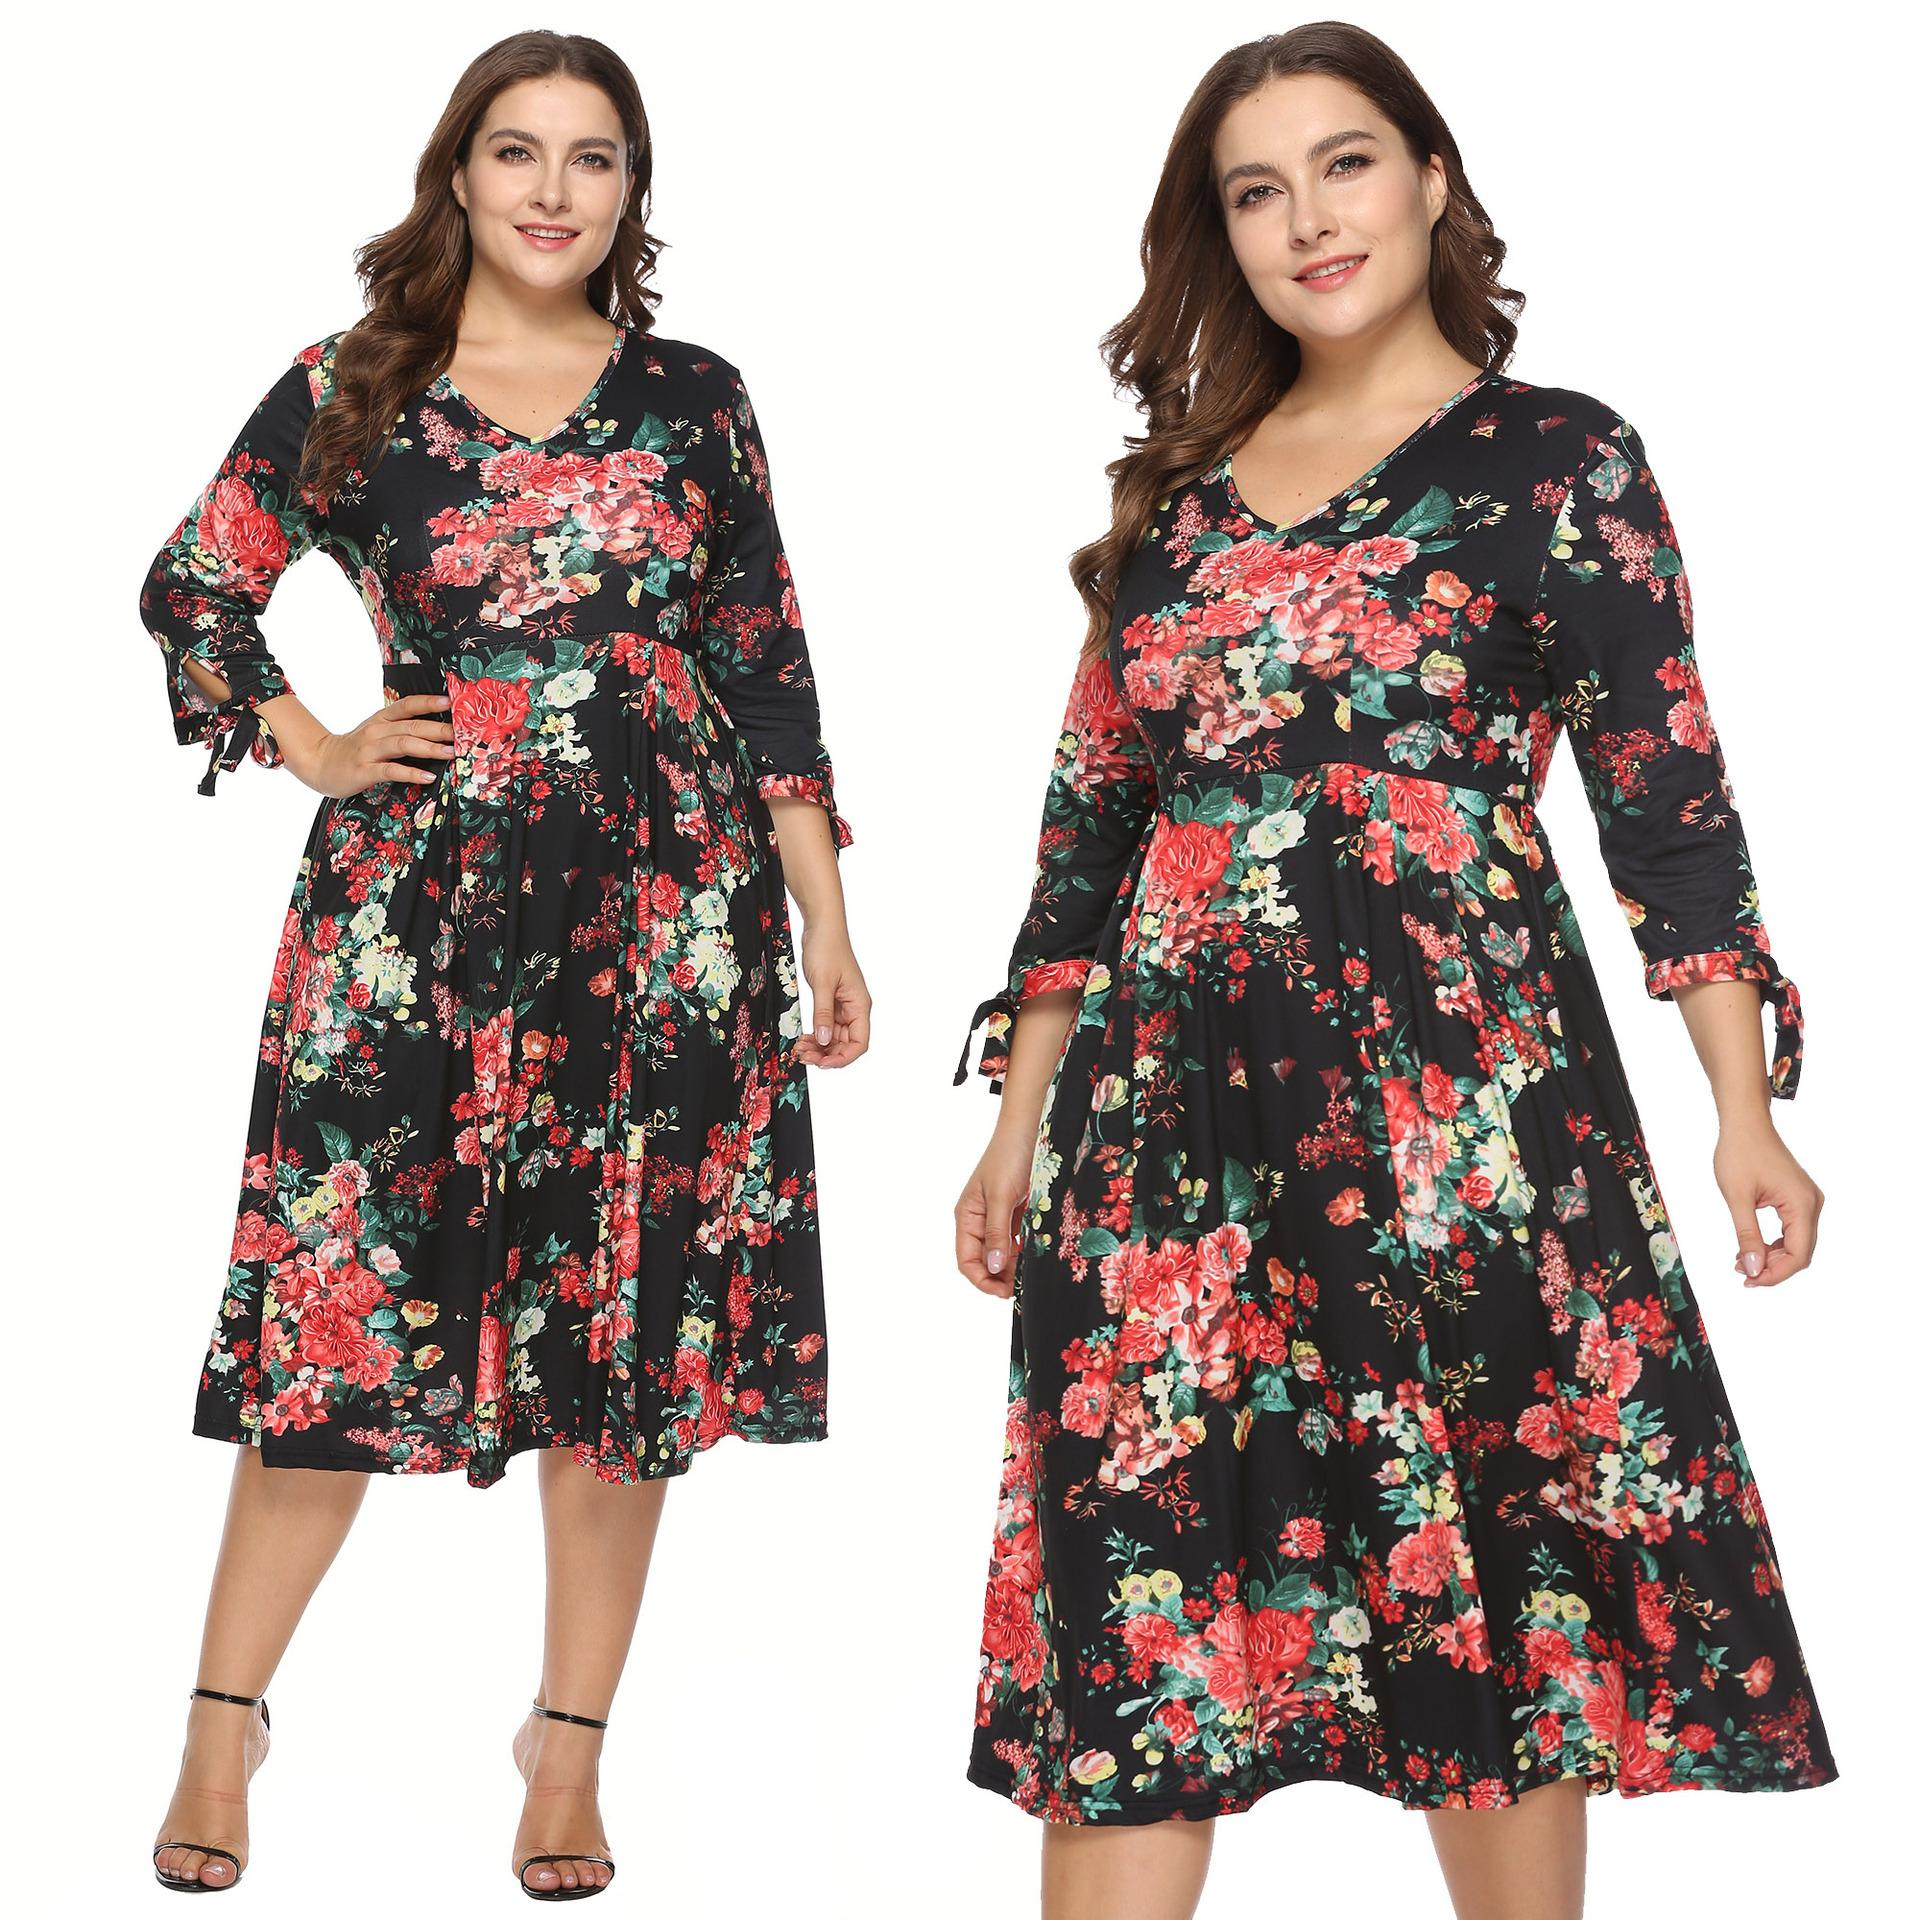 cc1b795d4b 2019 Autumn Dress Floral Print 3 4 Sleeves V Neck Knee Length A Line  Vintage Casual Street Style Winter Plus Size Dress Black Dress From  Ngexport